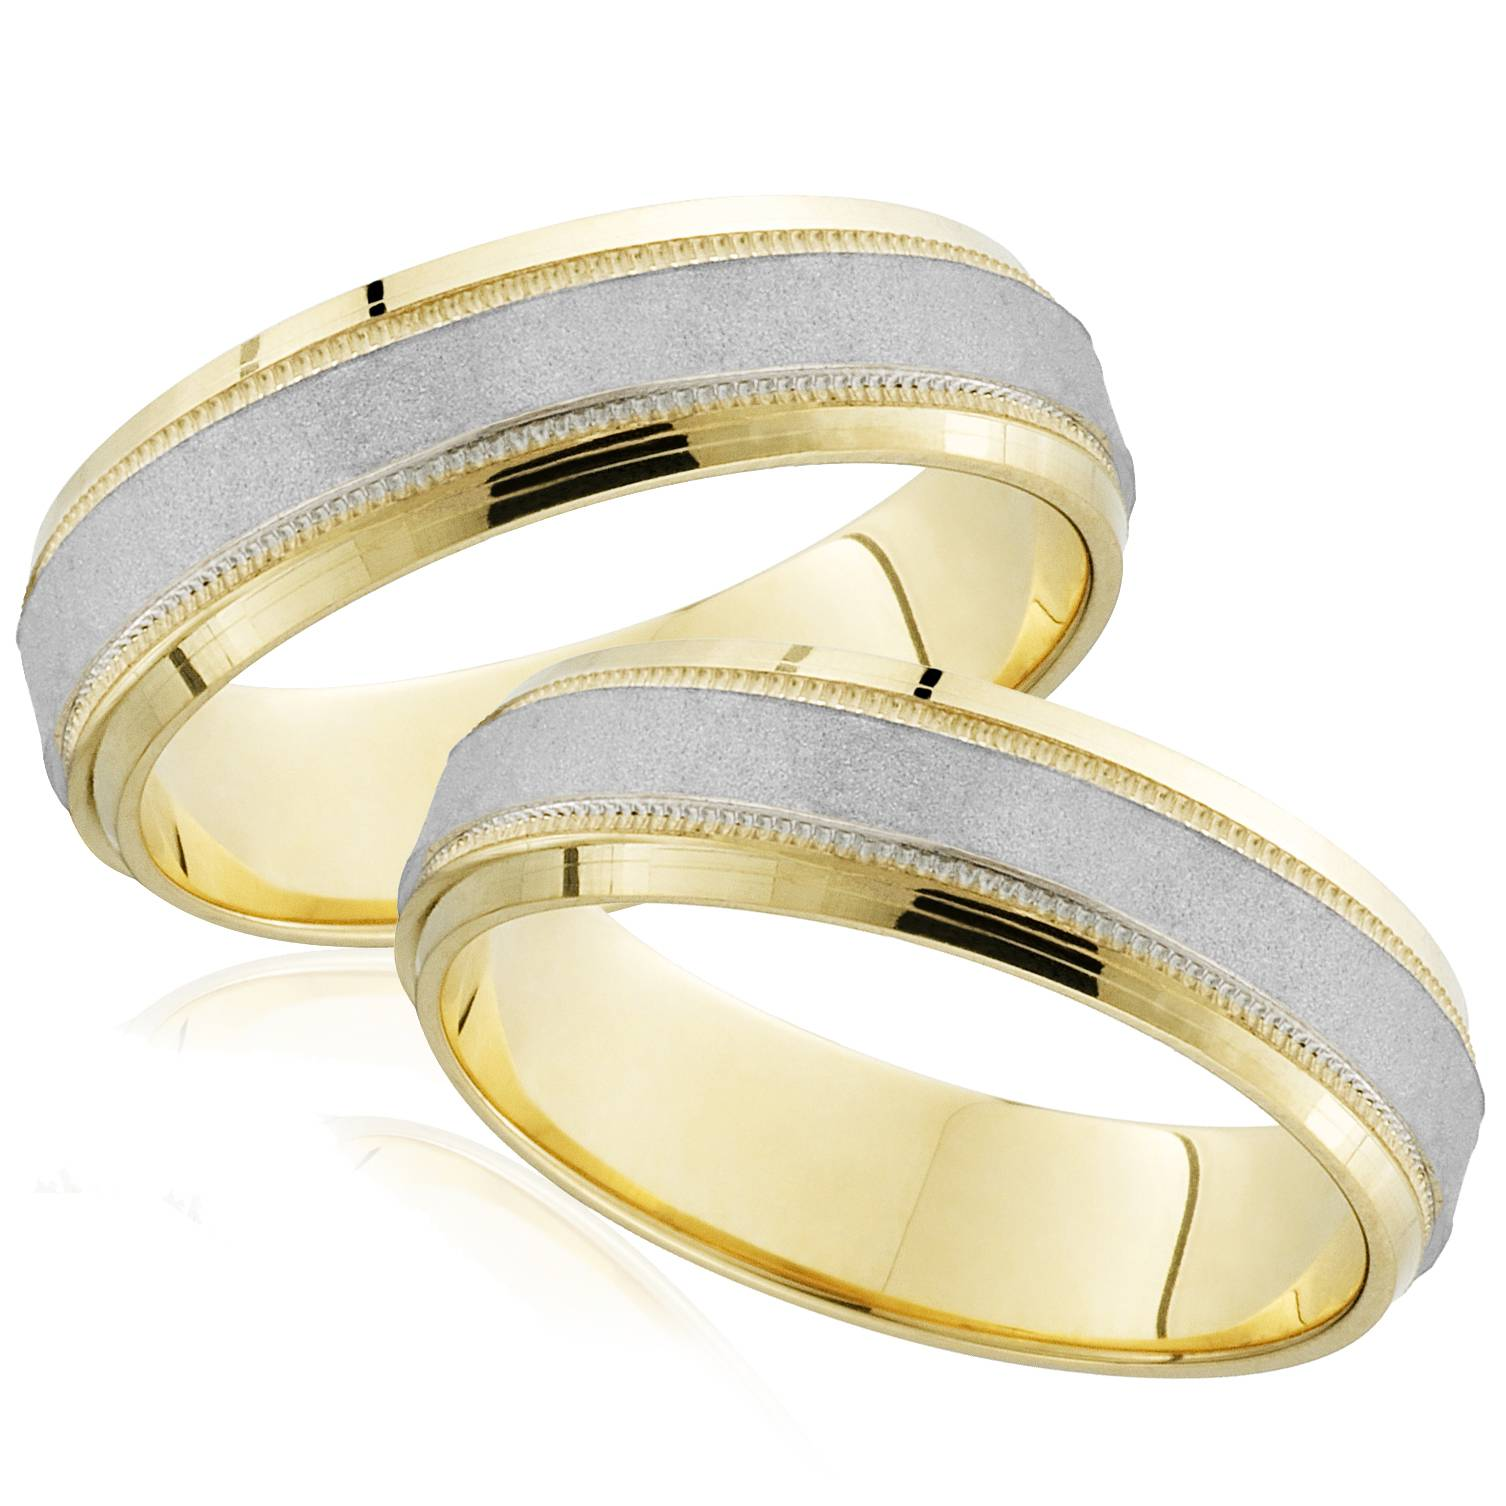 New With Tags Scott Kay Platinum Mens 6mm Wedding Band: Platinum & 18k Yellow Gold His Hers Matching Hammered